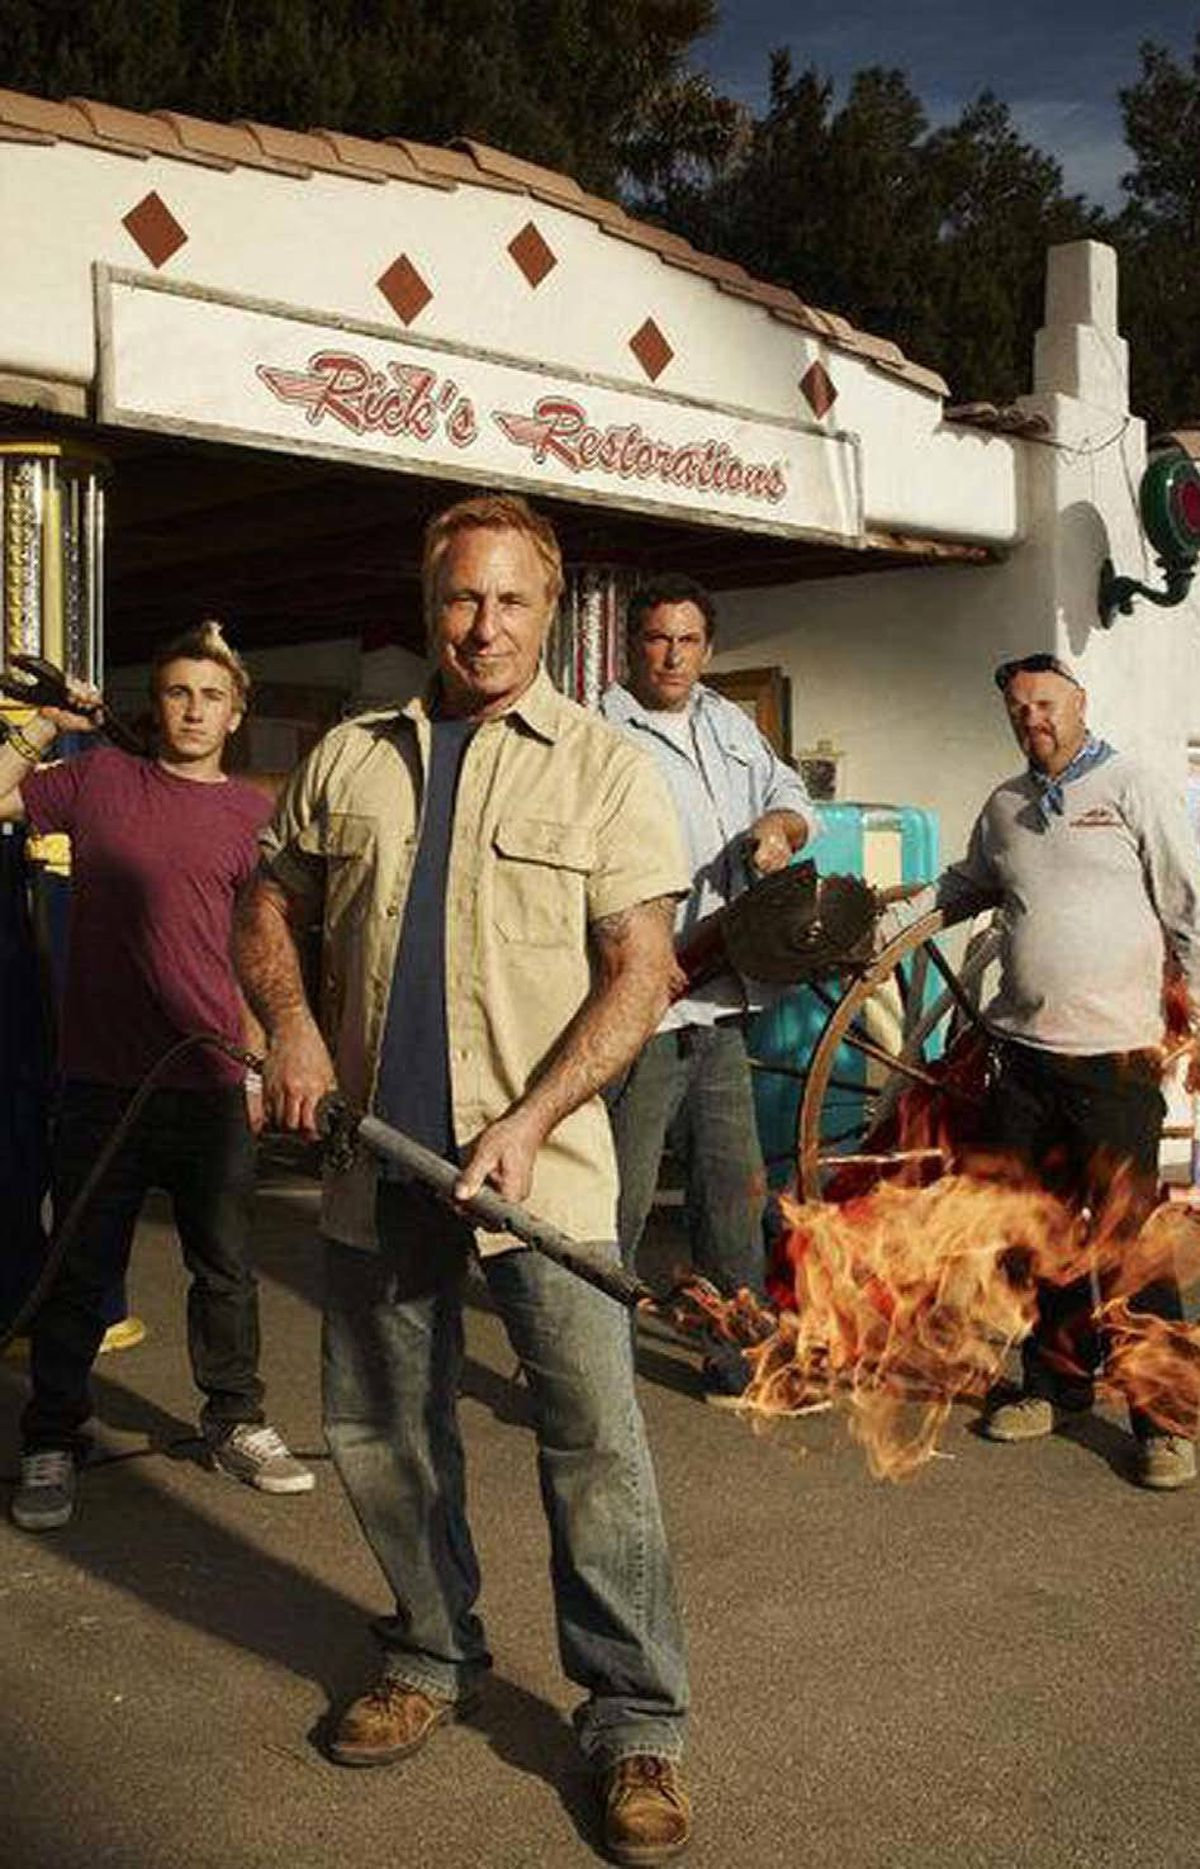 REALITY American Restoration History, 8 p.m. ET; 5 p.m. PT A spinoff from the hugely popular series Pawn Stars, this U.S. cable series documents the daily routine at the Las Vegas-based Rick's Restorations, which is operated by professional restorer Rick Dale and his teenaged son, Tyler. Tonight's double-episode run documents the restoration process of a pair of two-wheeled vehicles. In the first show, father and son are suitably impressed when someone wheels a classic 1967 Honda Scrambler motorbike into the shop. They're less thrilled in the second show, in which someone brings in a vintage 1967 Czechoslovakian motor scooter.